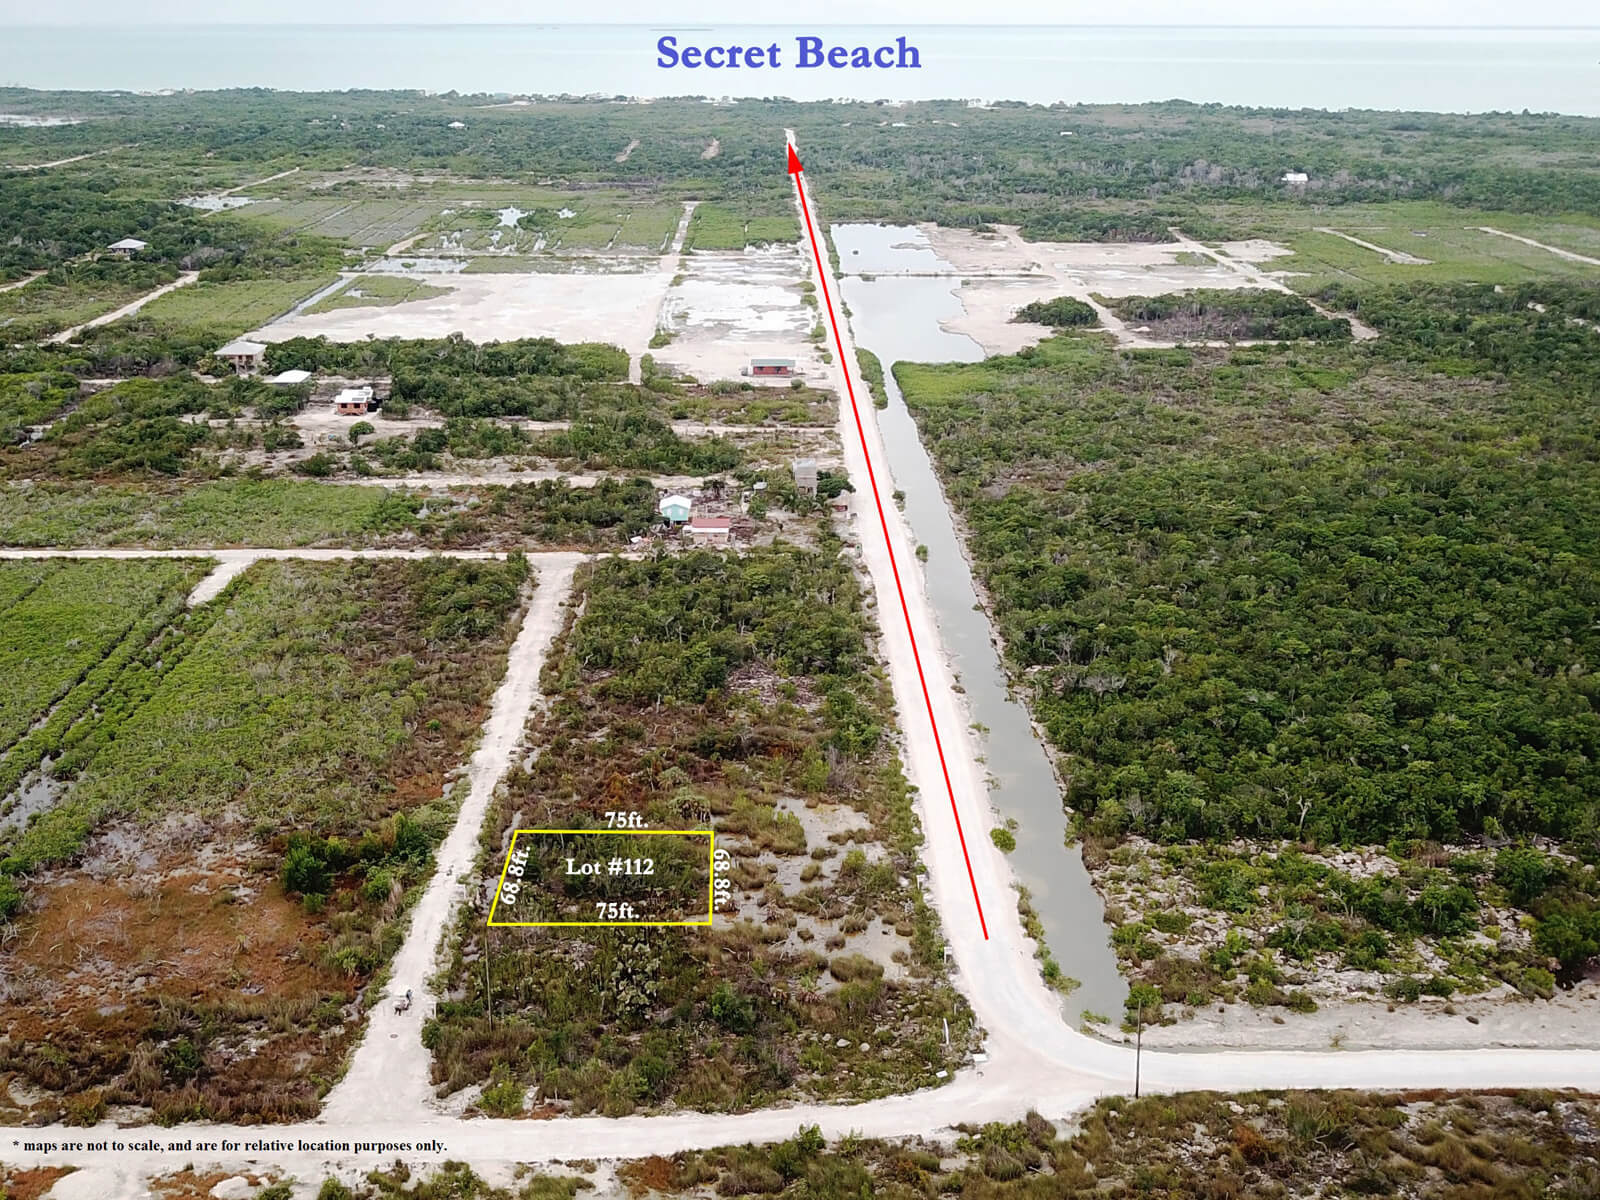 Land for Sale In San Pedro Town Belize